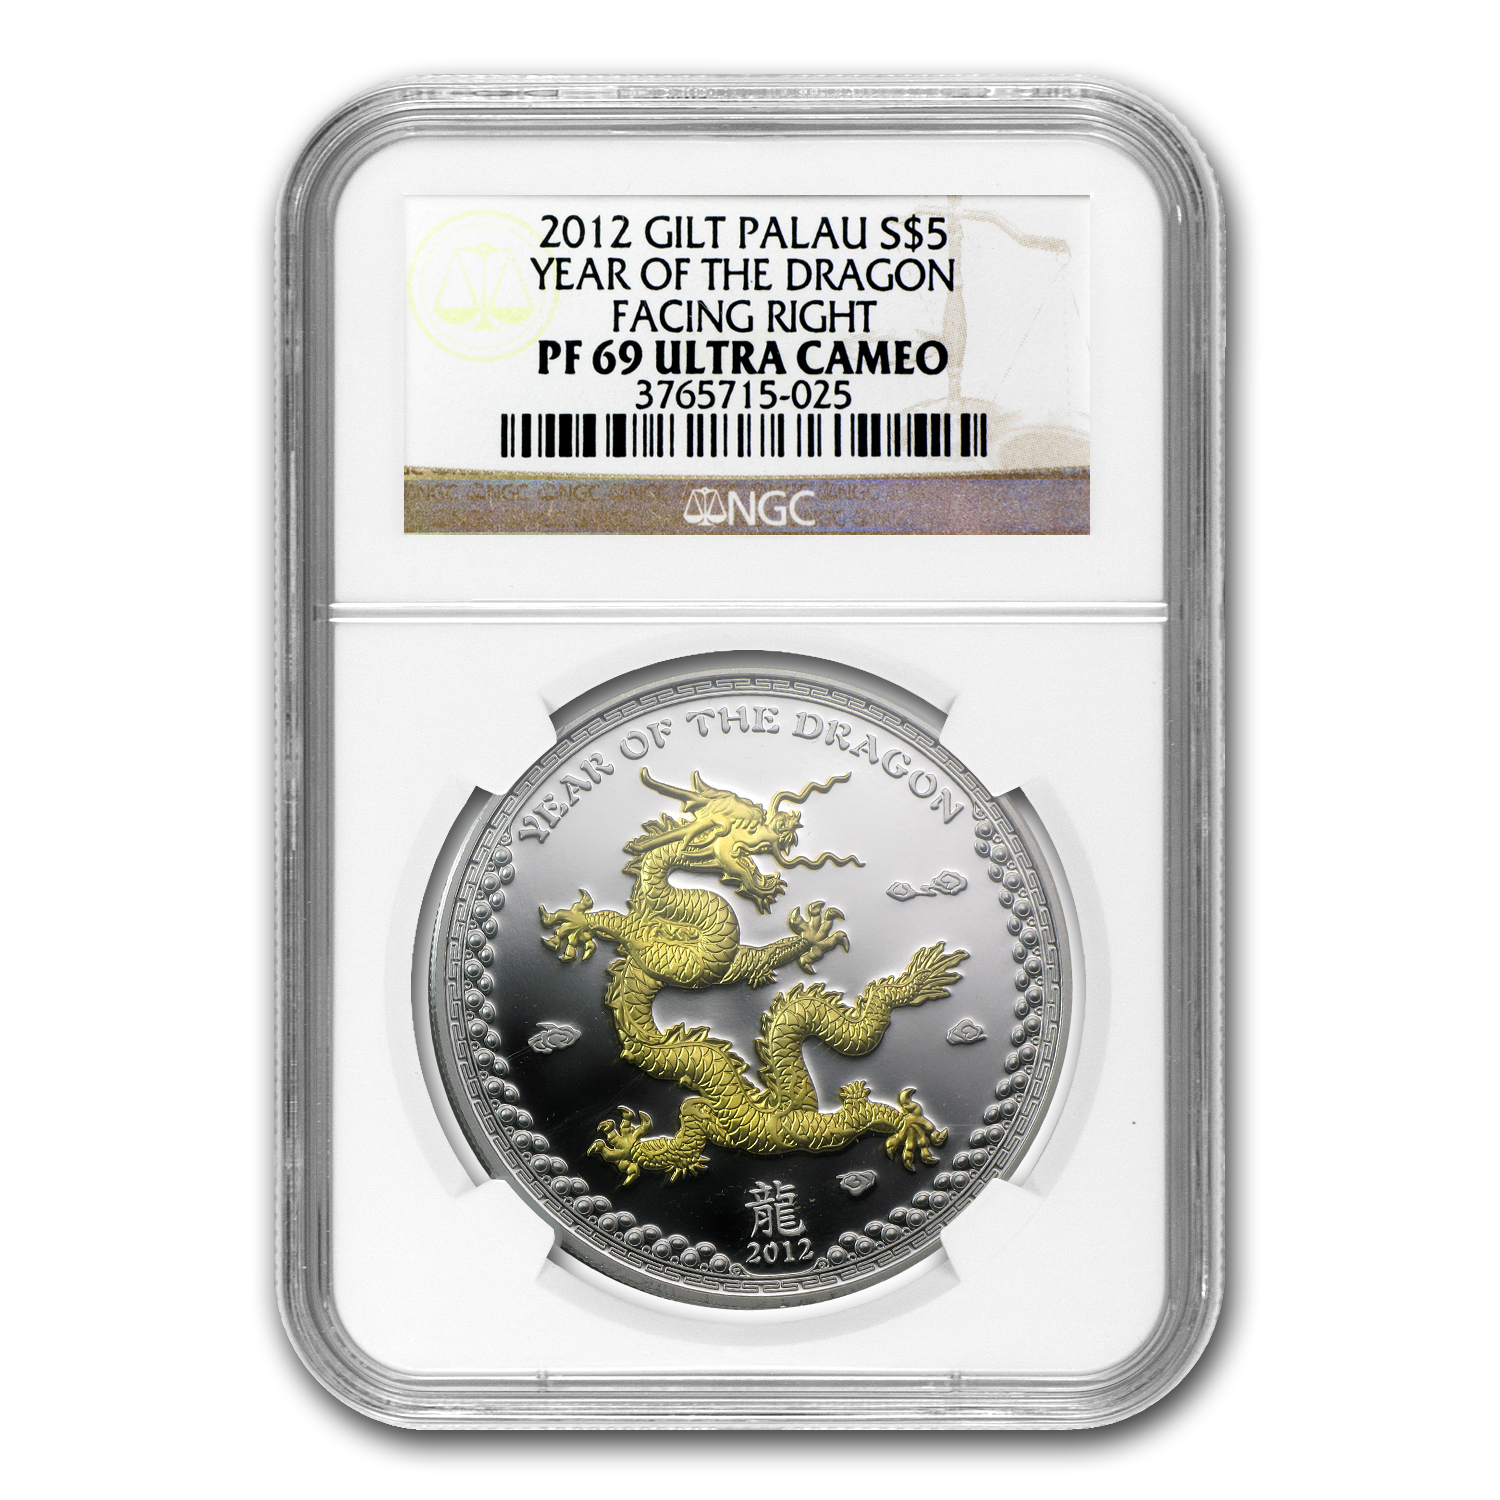 2012 Palau $5 Silver Dragon Gilded (Right) NGC PF-69 UC